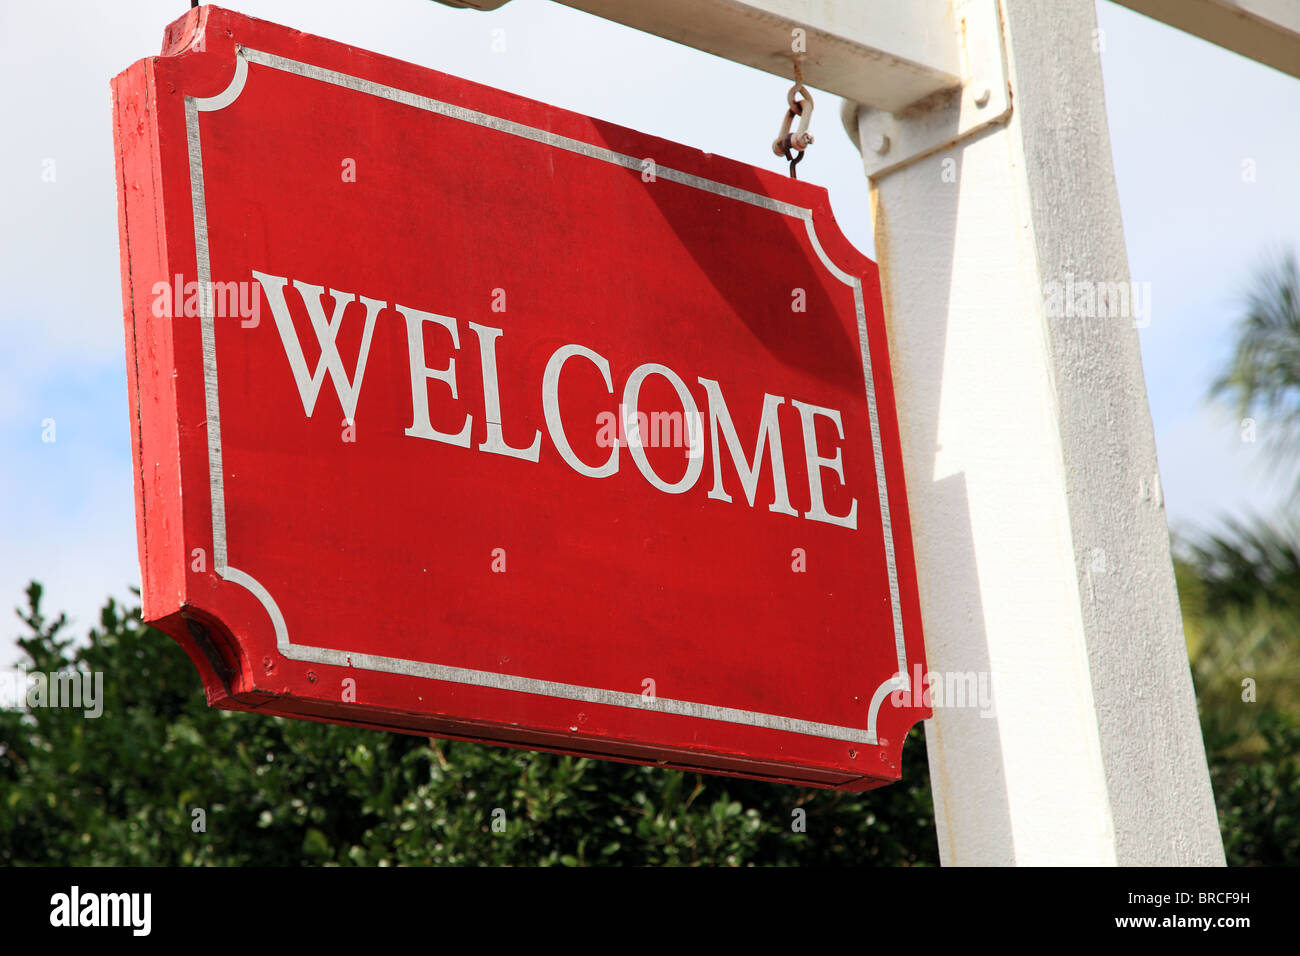 Red welcome sign of a hotel or restaurant. - Stock Image